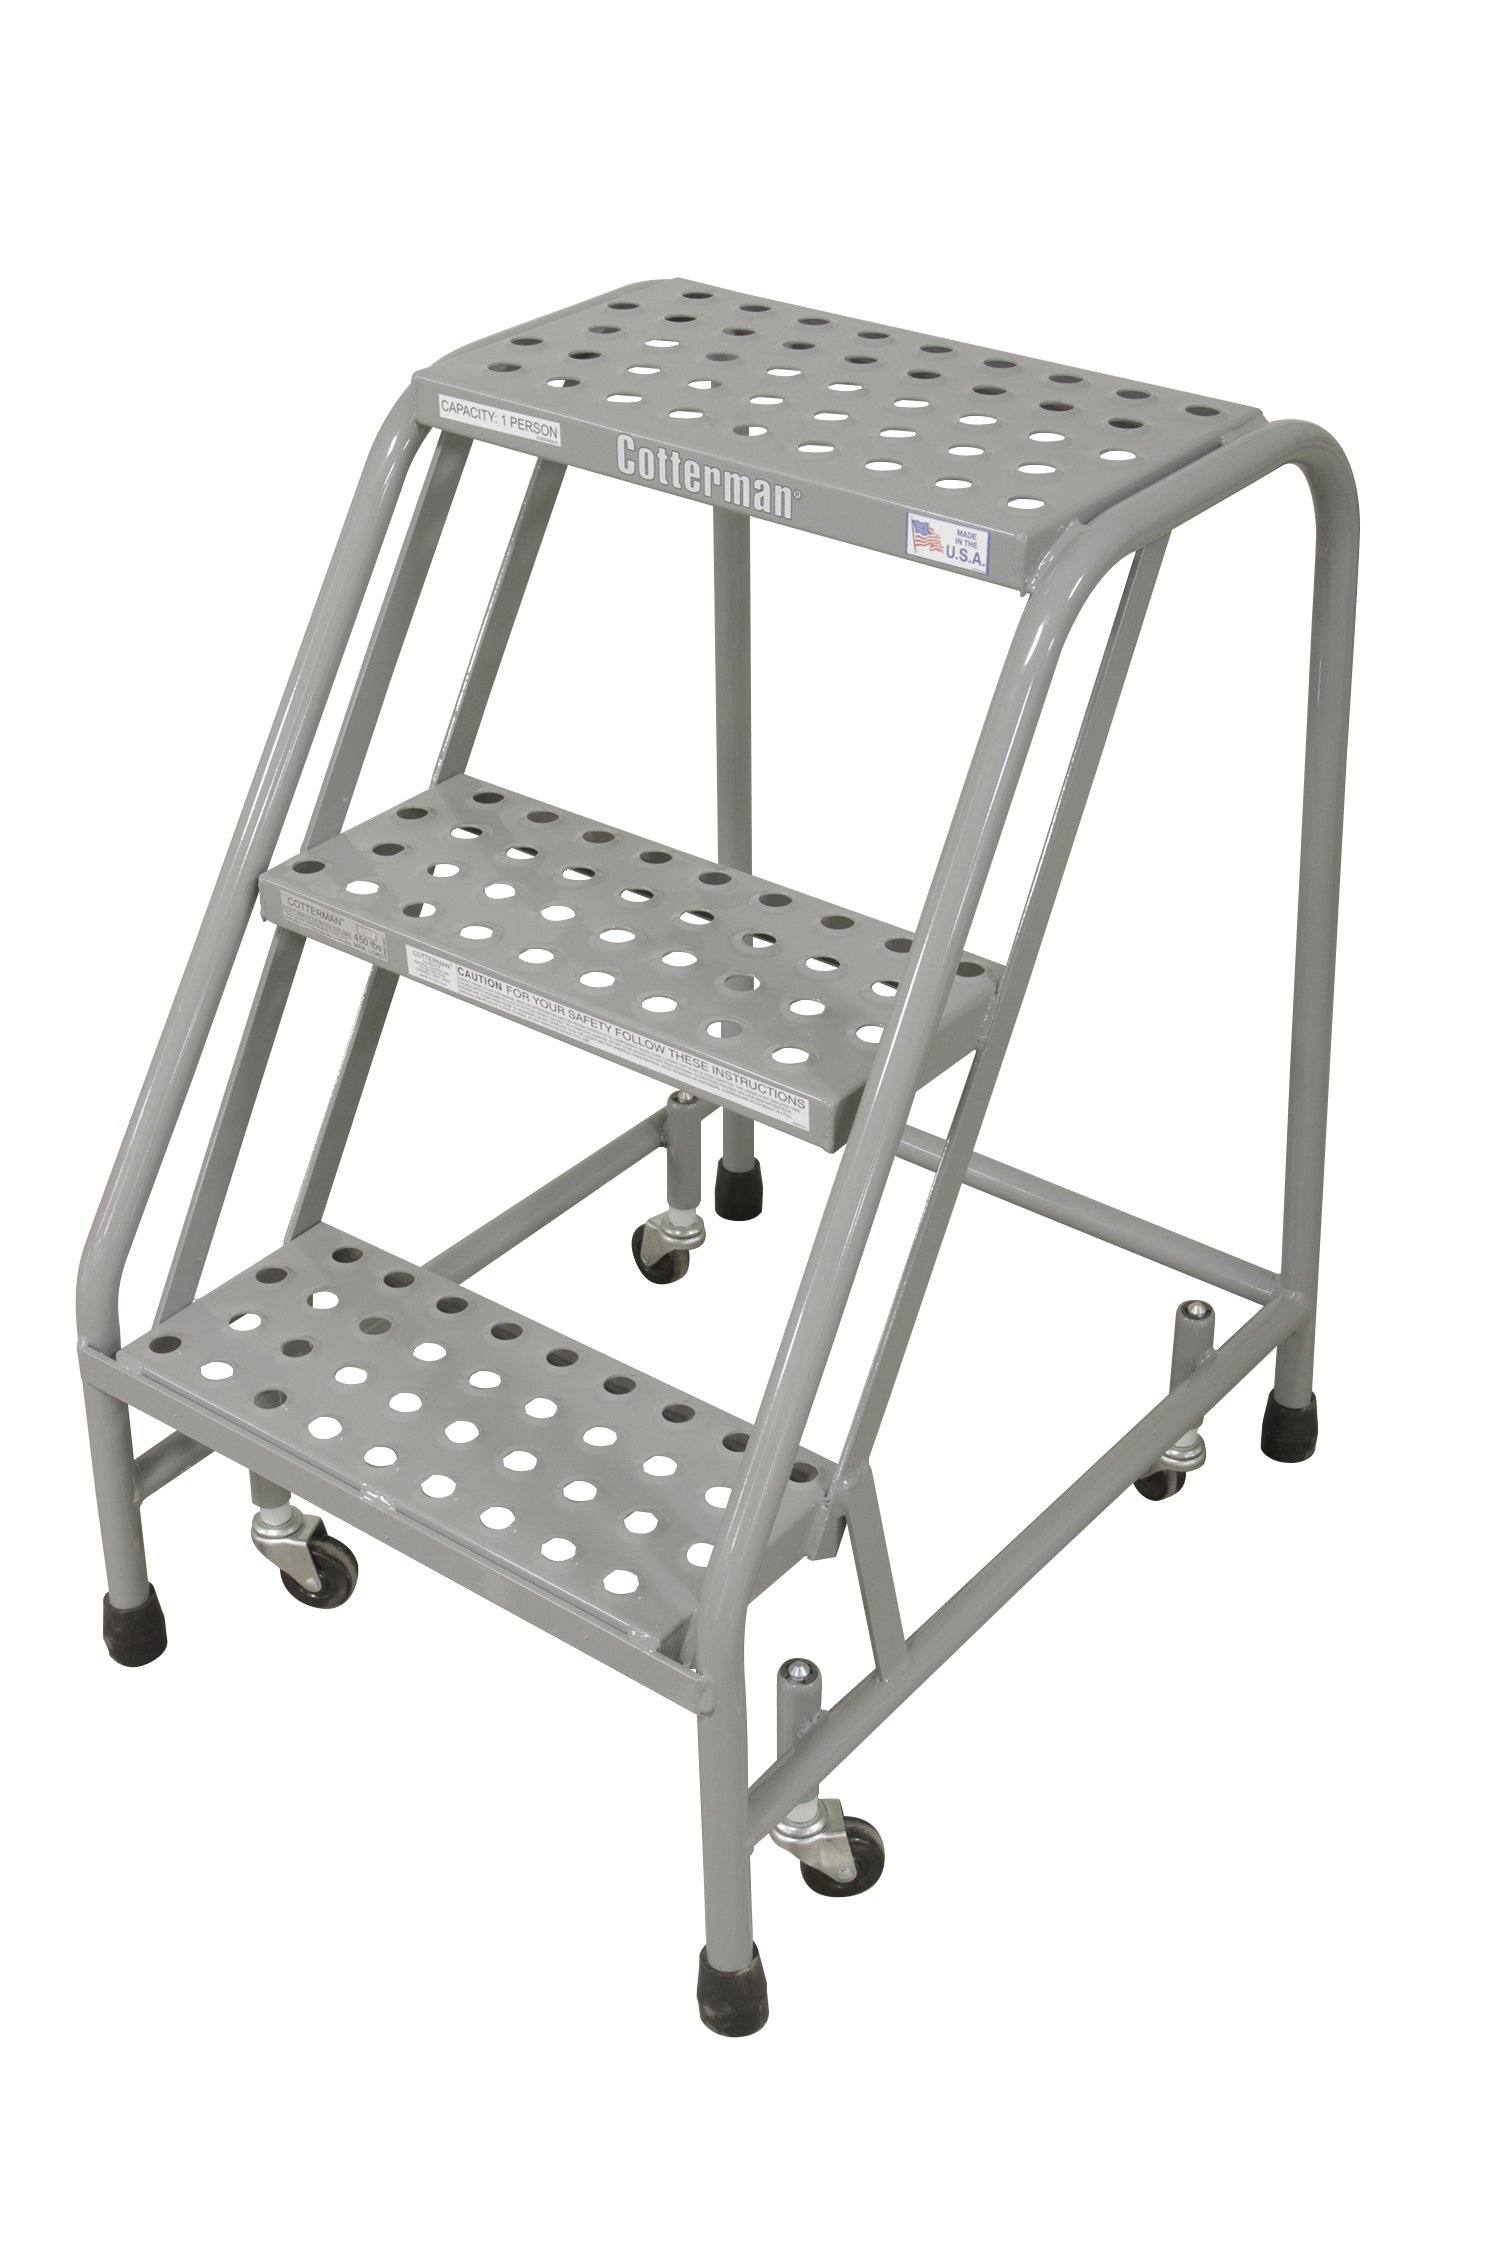 Cotterman 1003N1820A6E10B3C1P1 All Welded Ready to Use Rolling Steel Safety Ladder, 3-Step, 30'' Top Step Height, Performa Perforated Tread, 450 lb Capacity